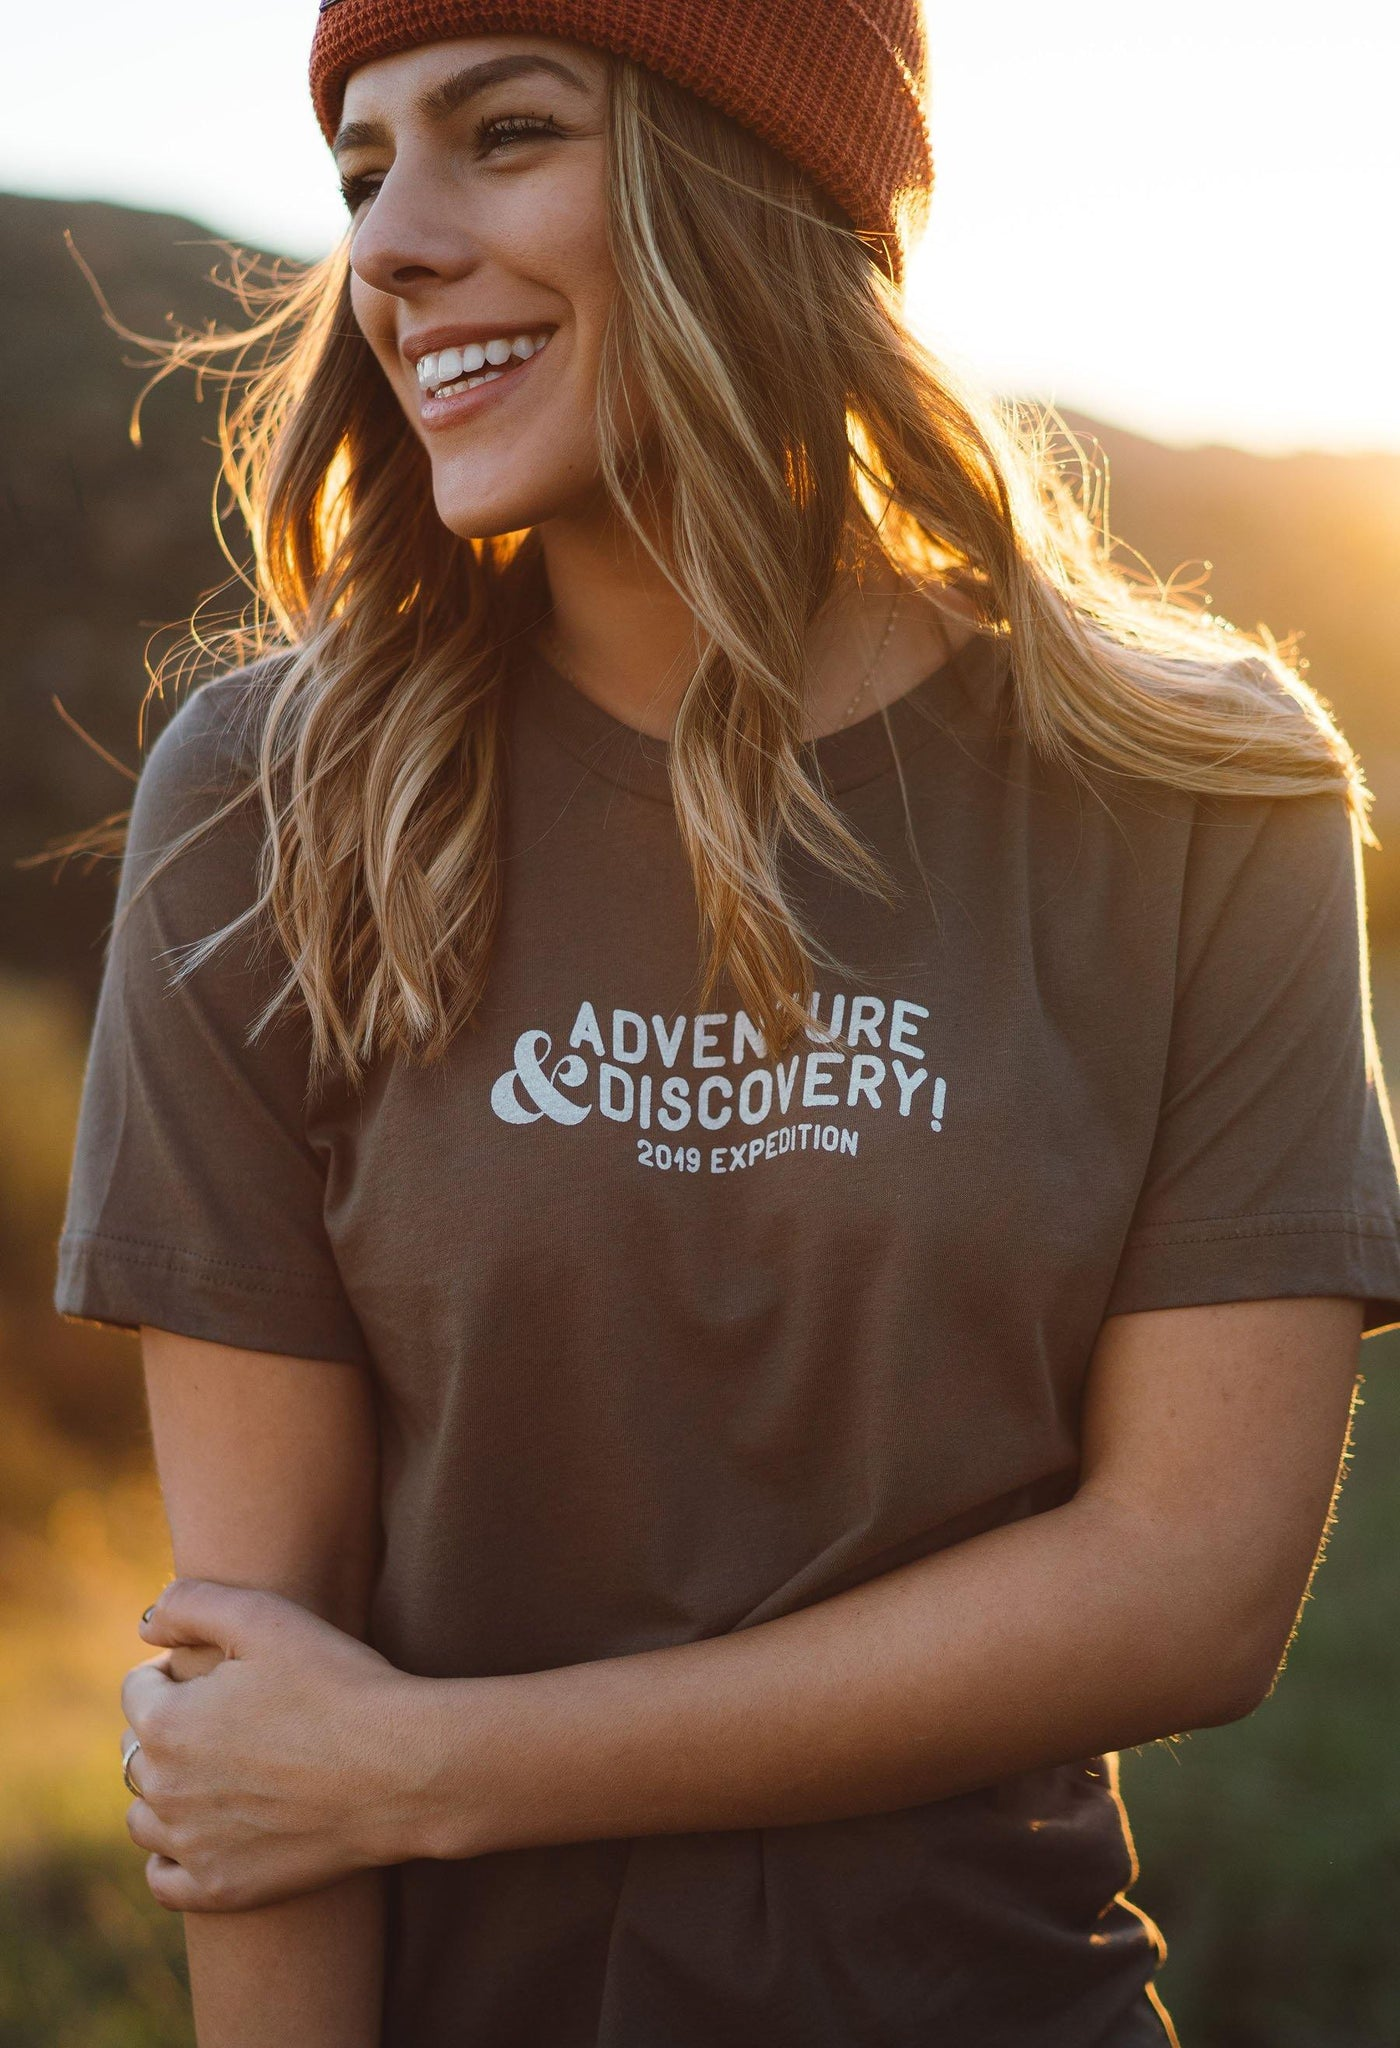 Discovery Tee - The Parks Apparel